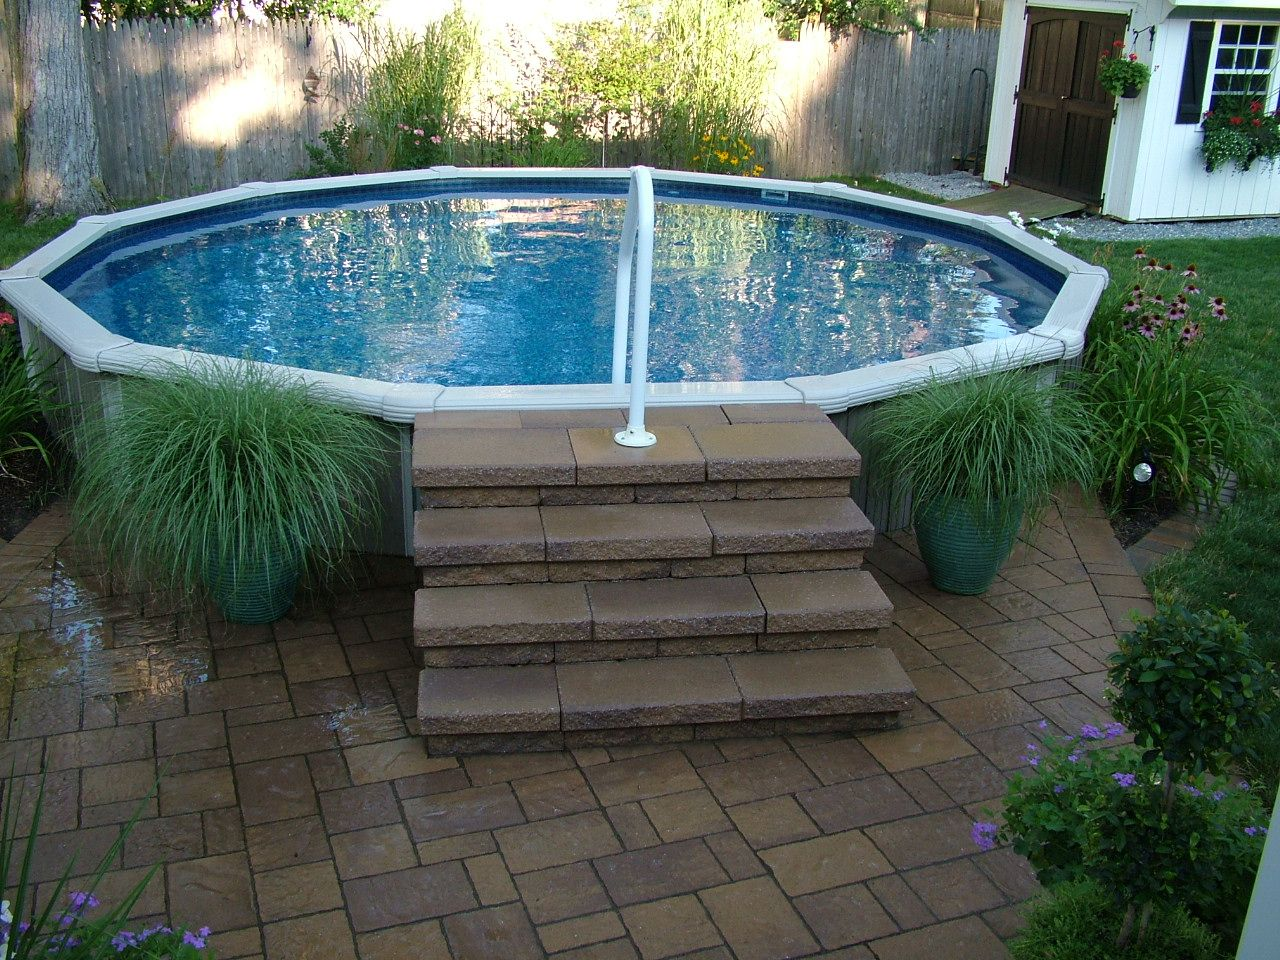 49 Small Above Ground Pools Ideas Above Ground Pool In Ground Pools Small Above Ground Pool